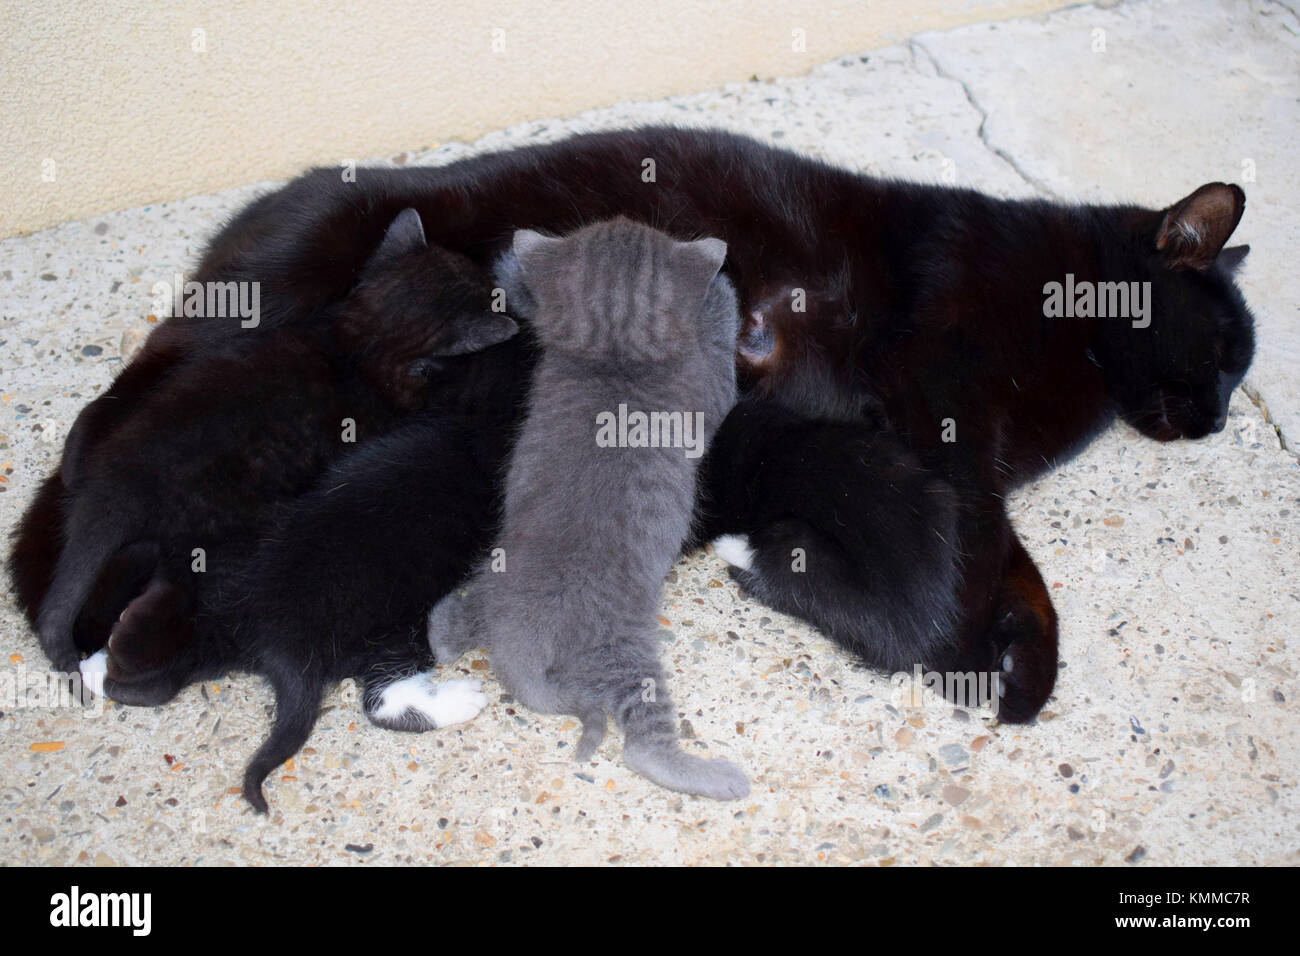 Black mama cat nursing her 4 kittens in the outdoors - Stock Image